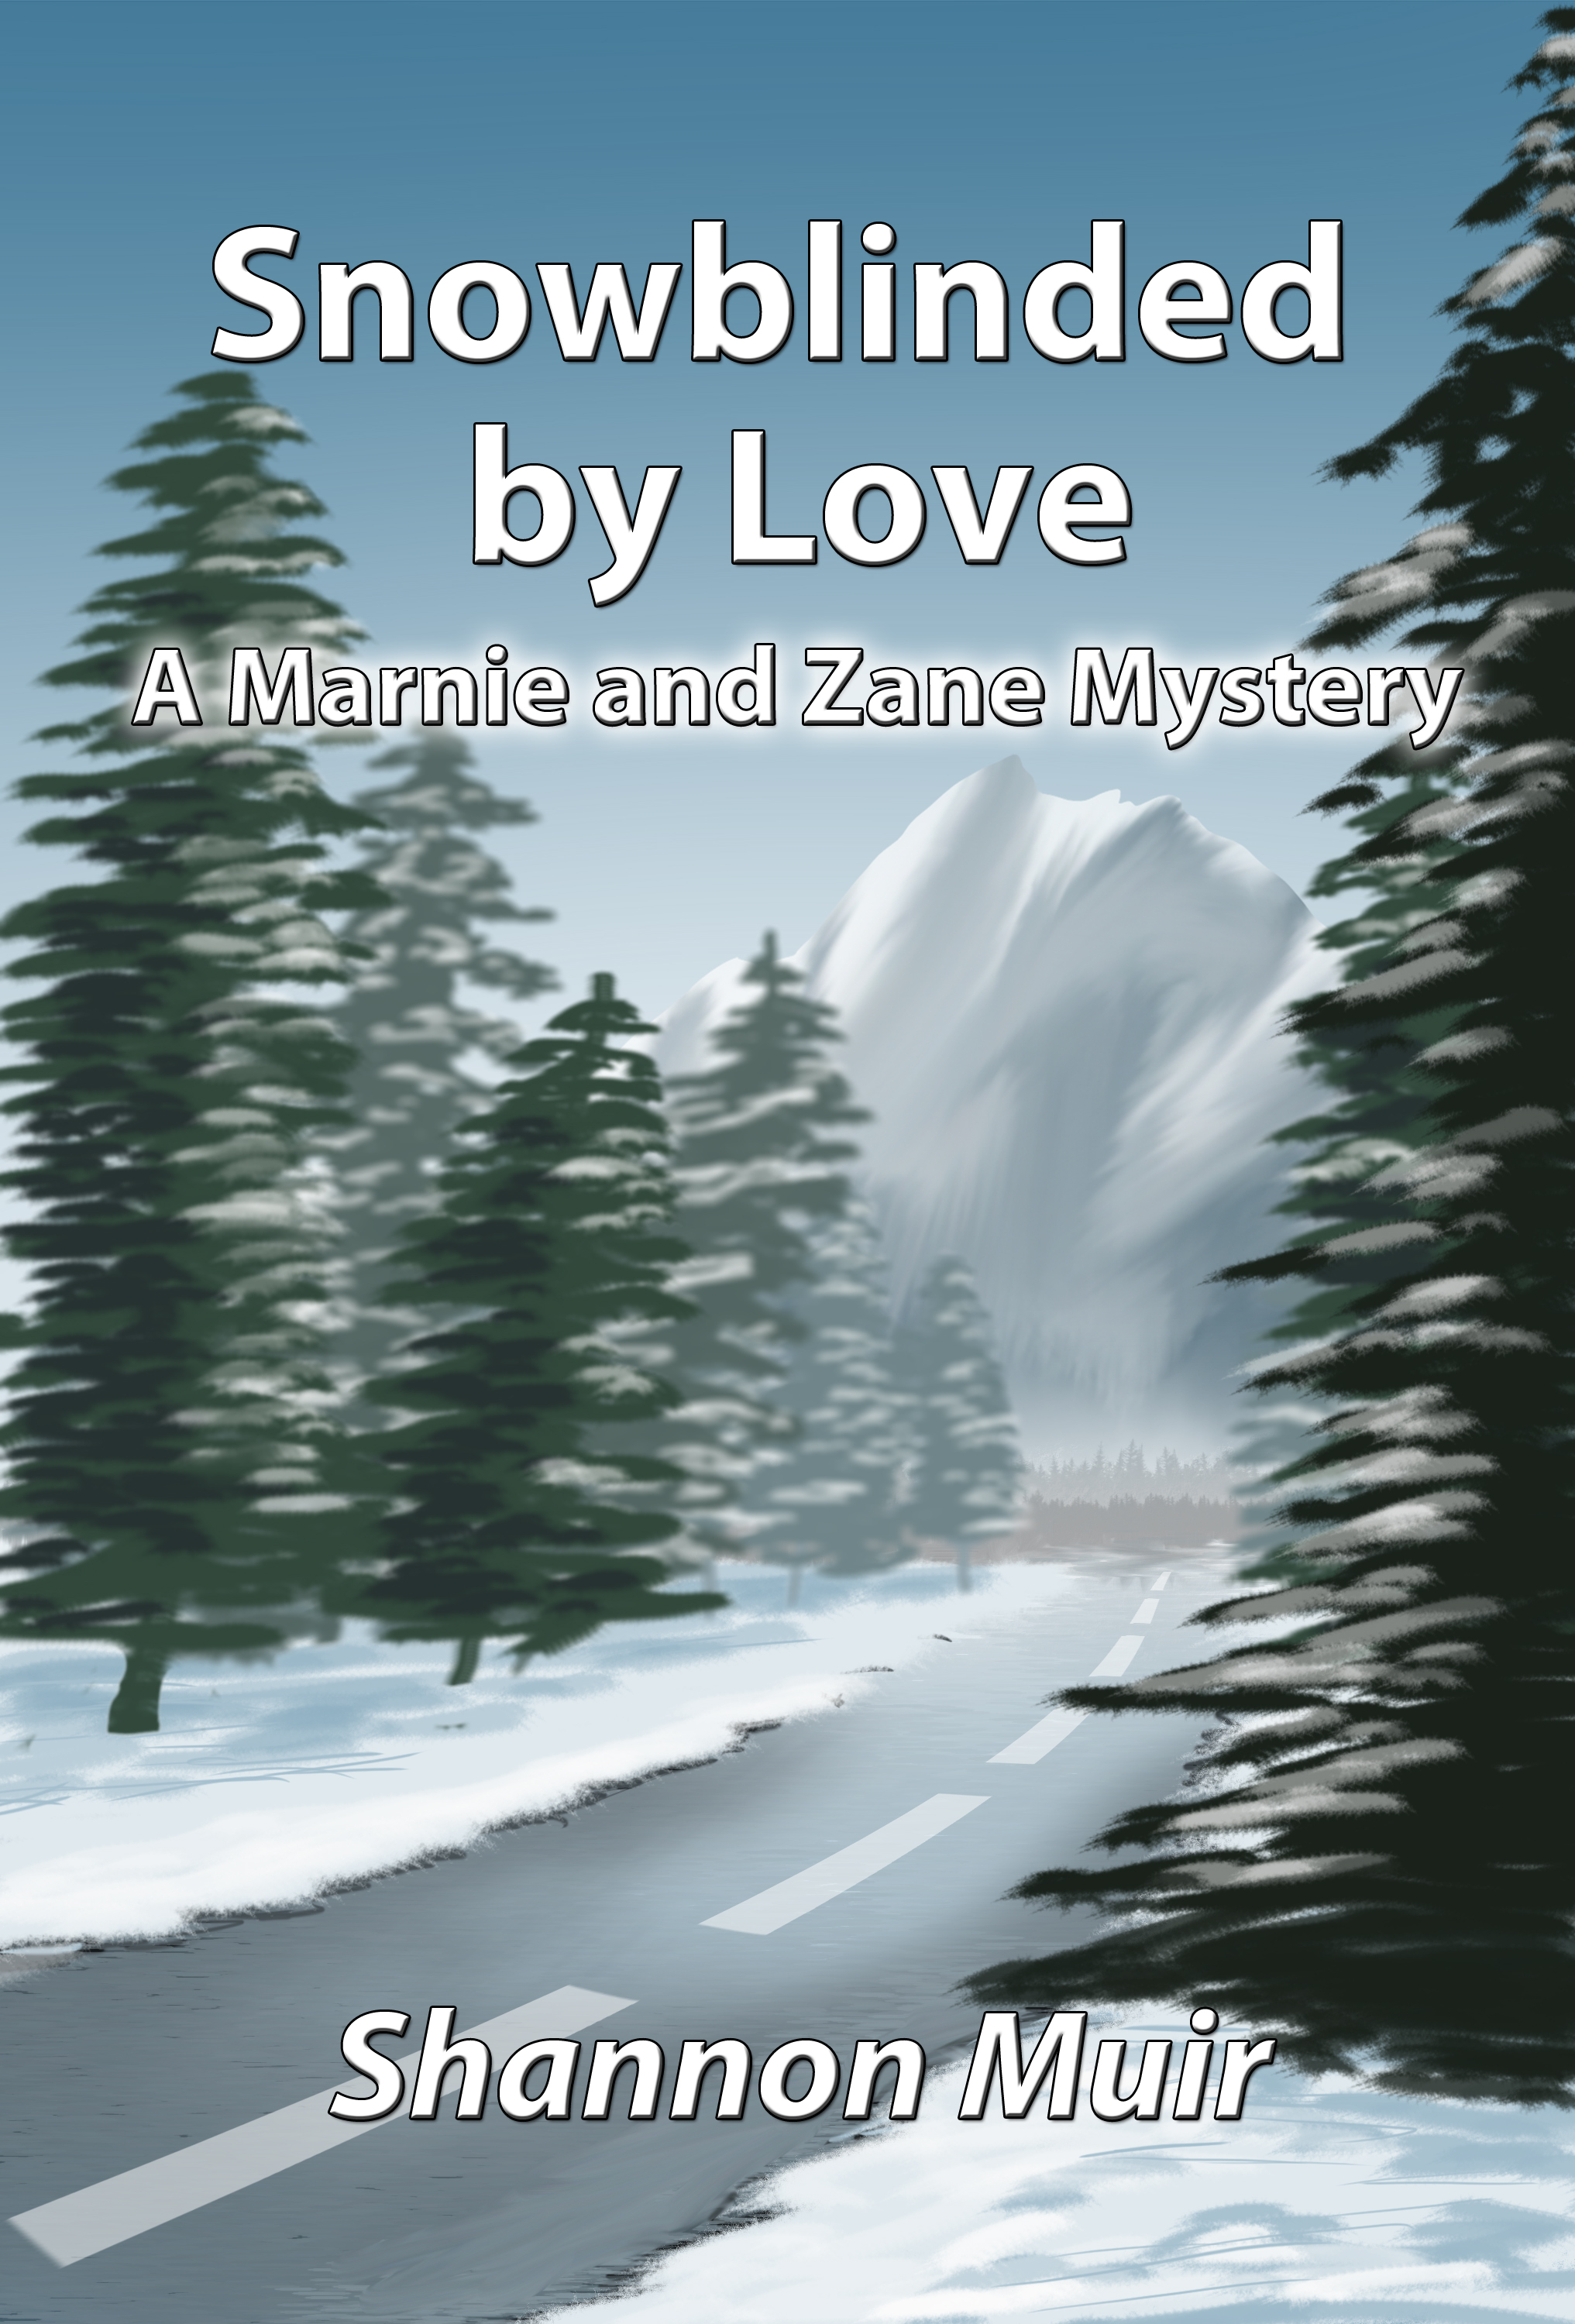 Snowblinded by Love: A Marnie and Zane Mystery, an Ebook by Shannon Muir